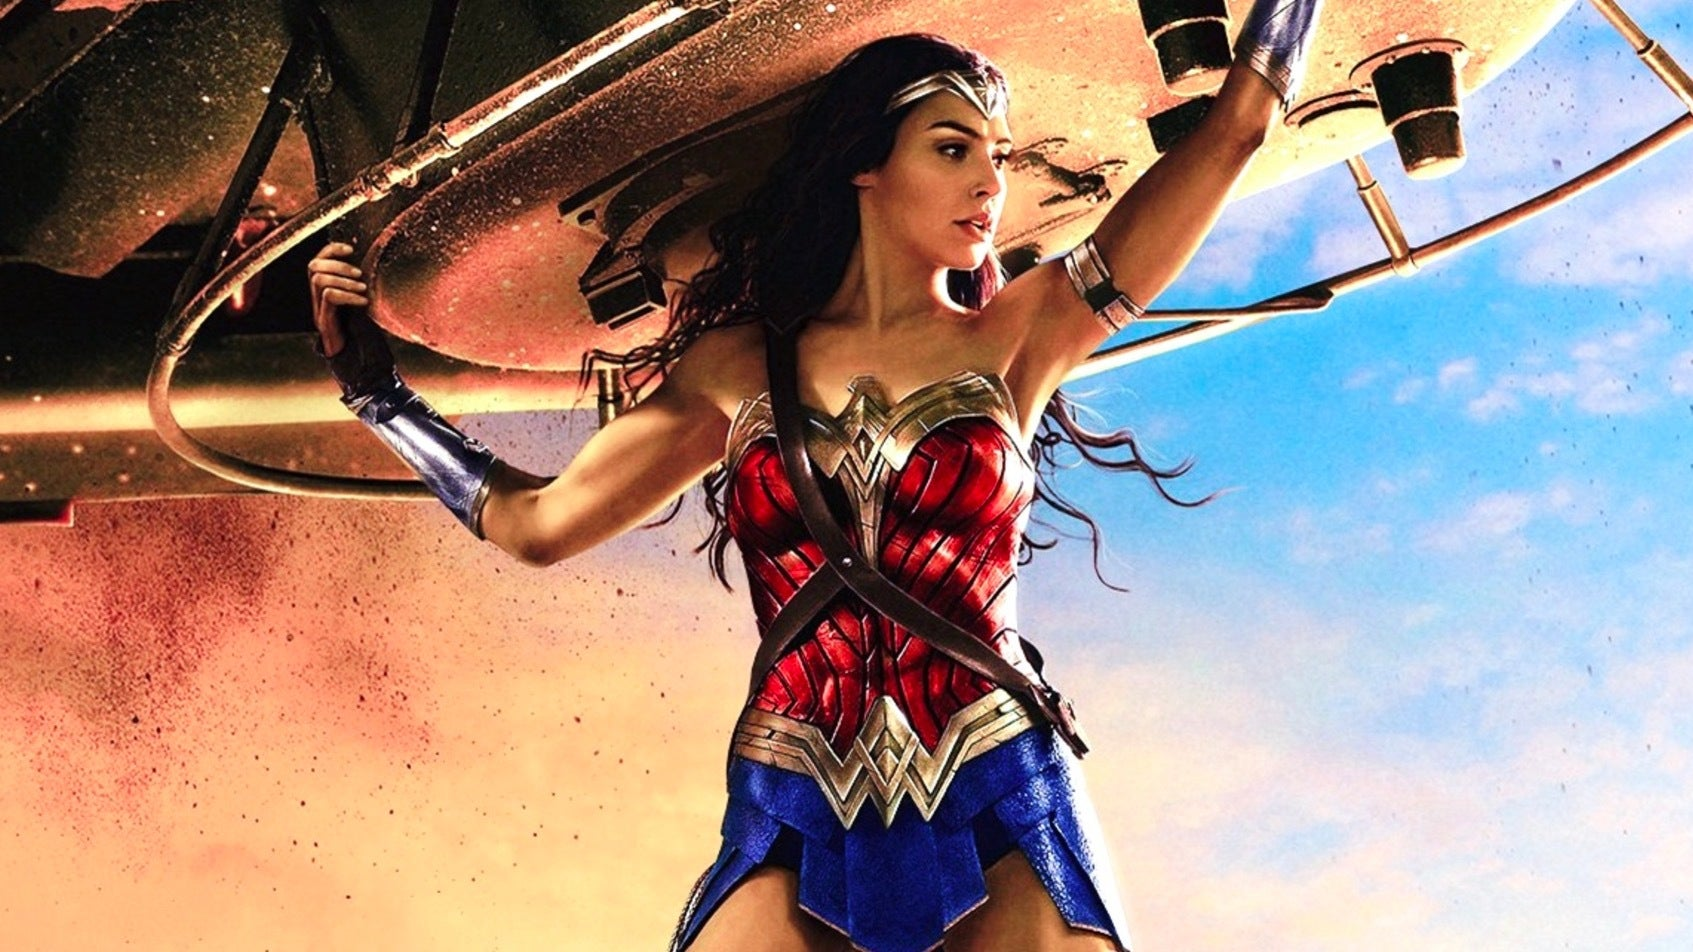 Intel Celebrates Wonder Woman With Shooting Star Drone Light Show